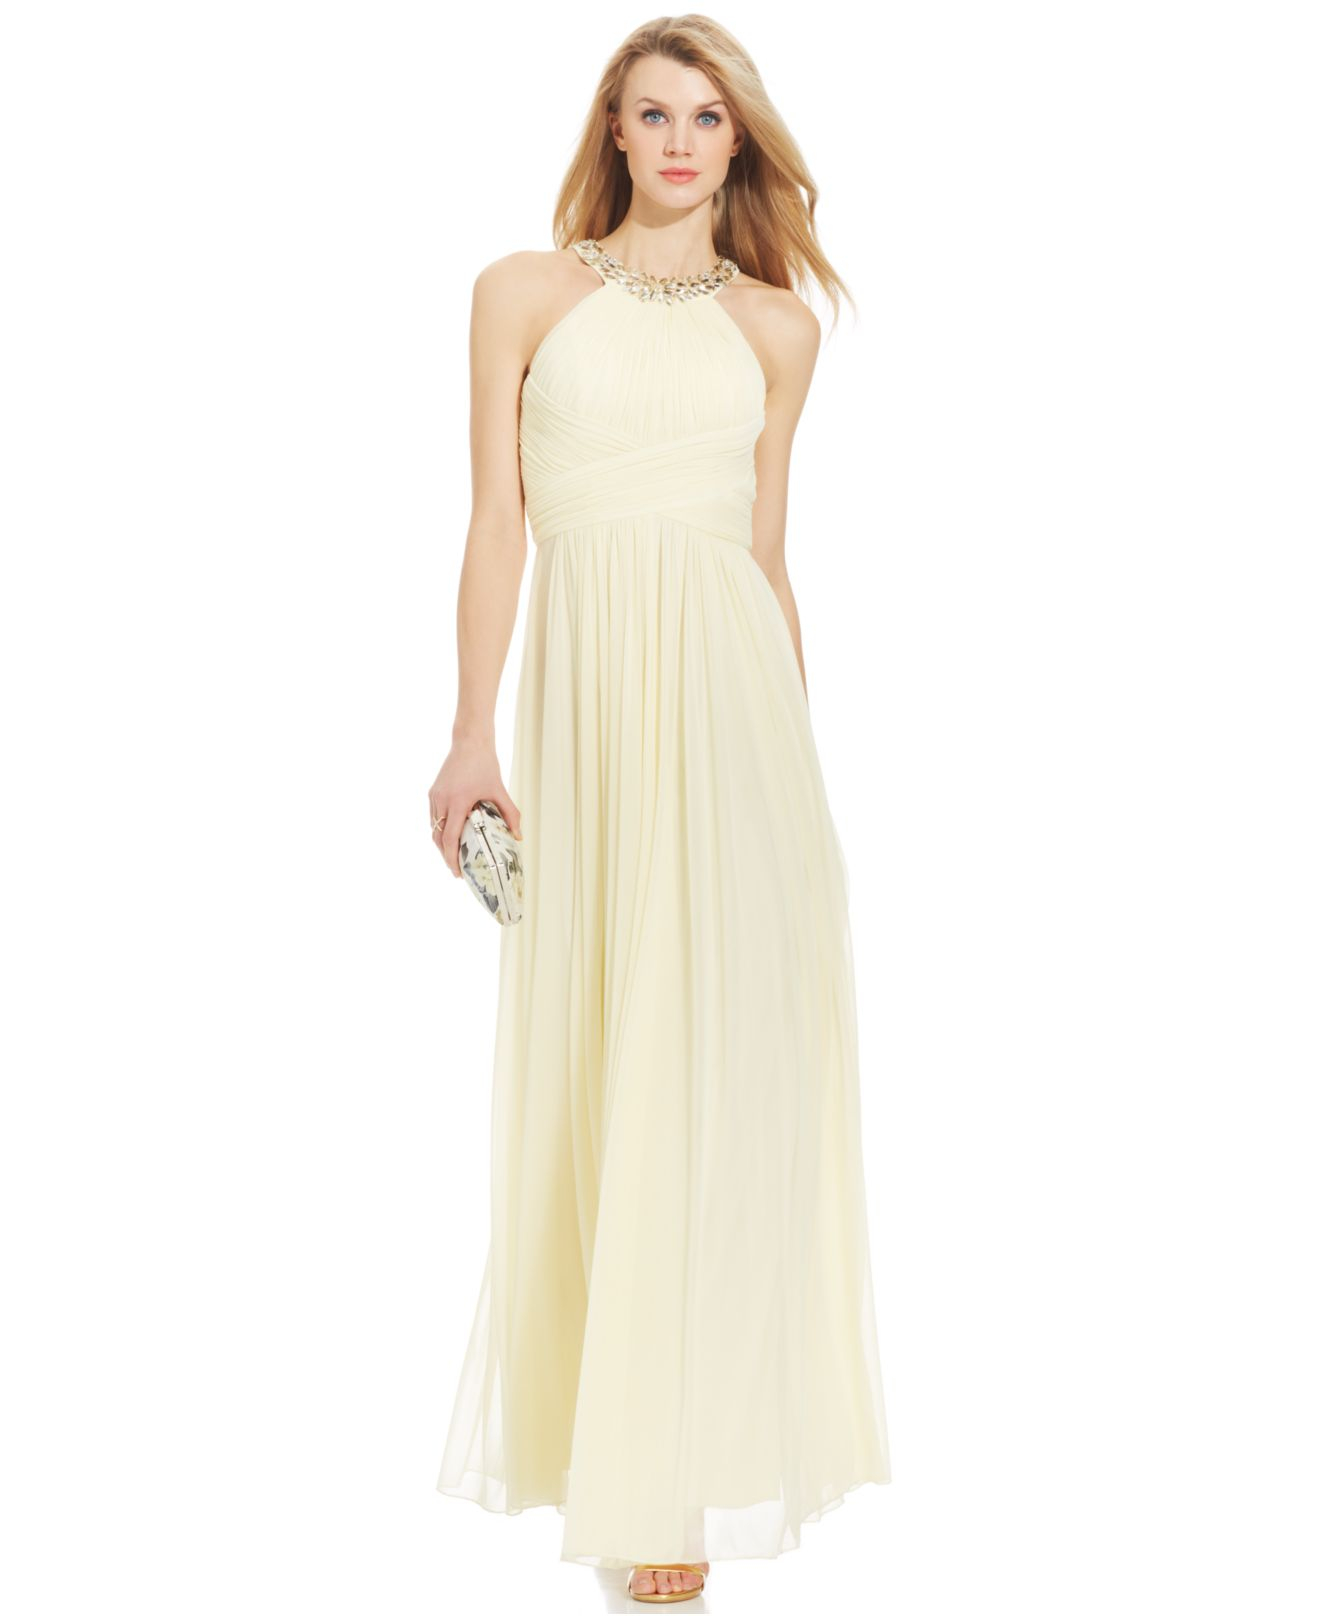 Lyst - Js Boutique Embellished Shirred Halter Gown in Yellow